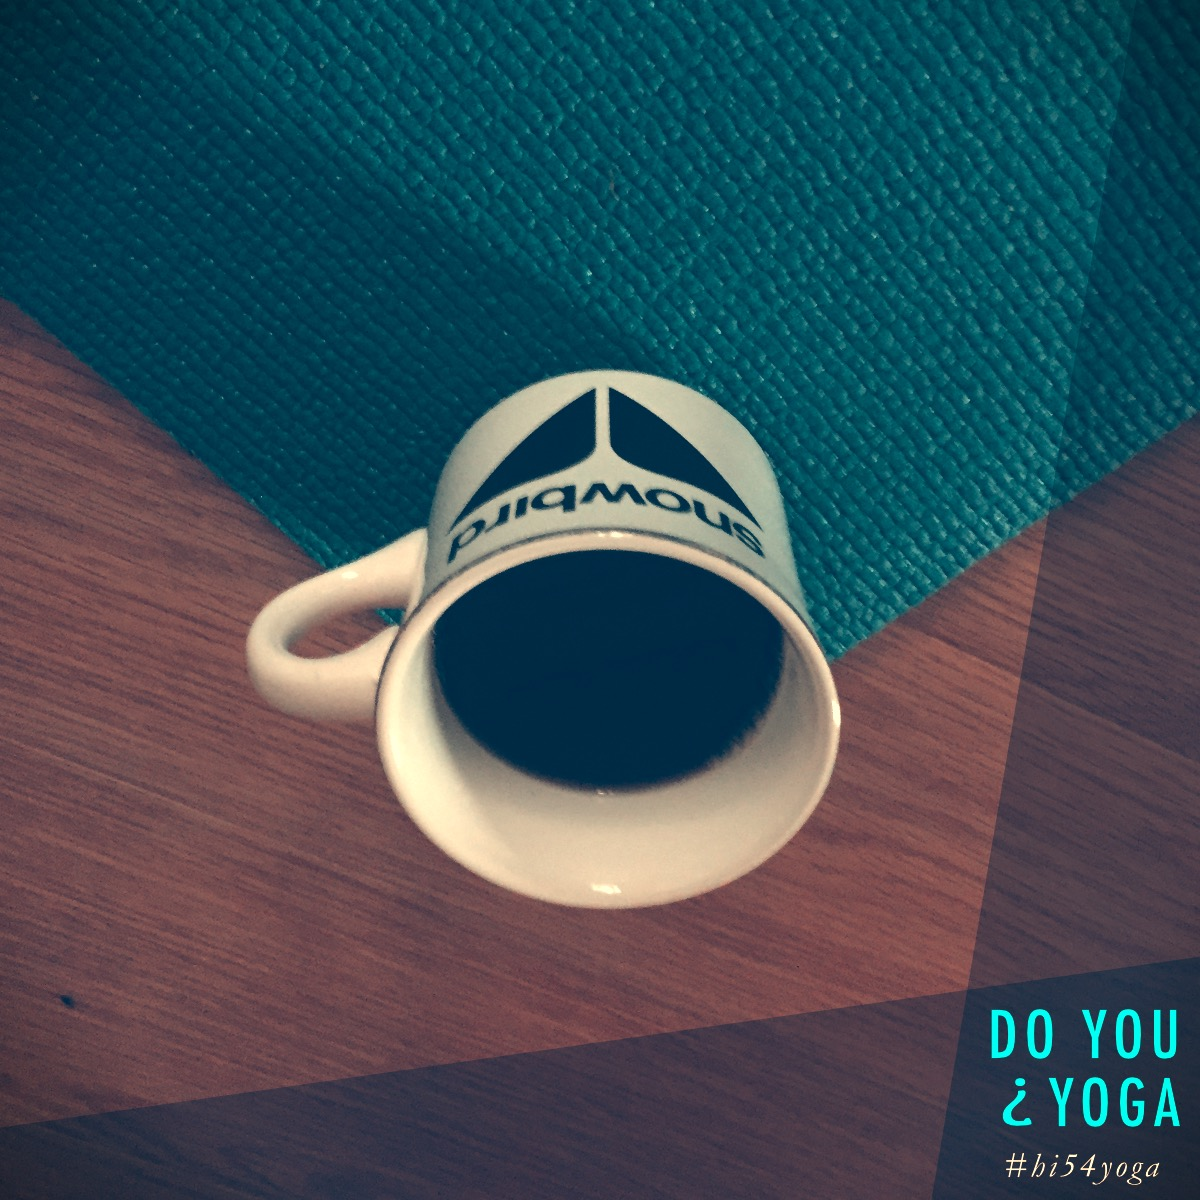 Sometimes it's nice to just freestyle your own yoga routine, one that you make up with whatever yogi pose knowledge you currently have + whatever feels right with the music you're listening to. This playlist is chock-full of music that is good for that vibe. - - JEREMY / @HI54LOFI